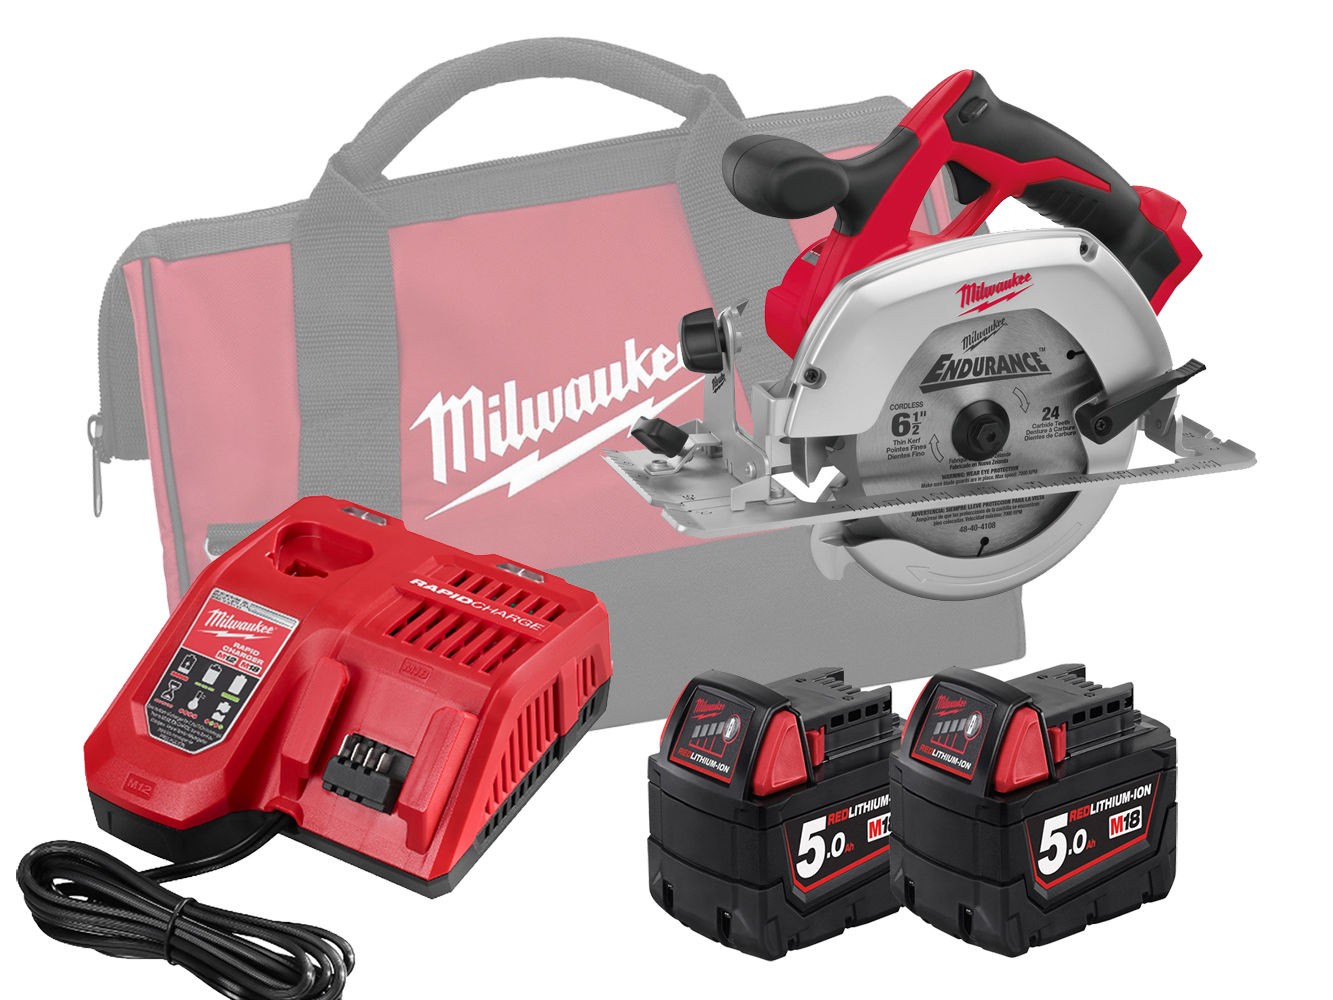 MILWAUKEE 18V HEAVY DUTY CIRCULAR SAW - HD18CS - 5.0AH PACK